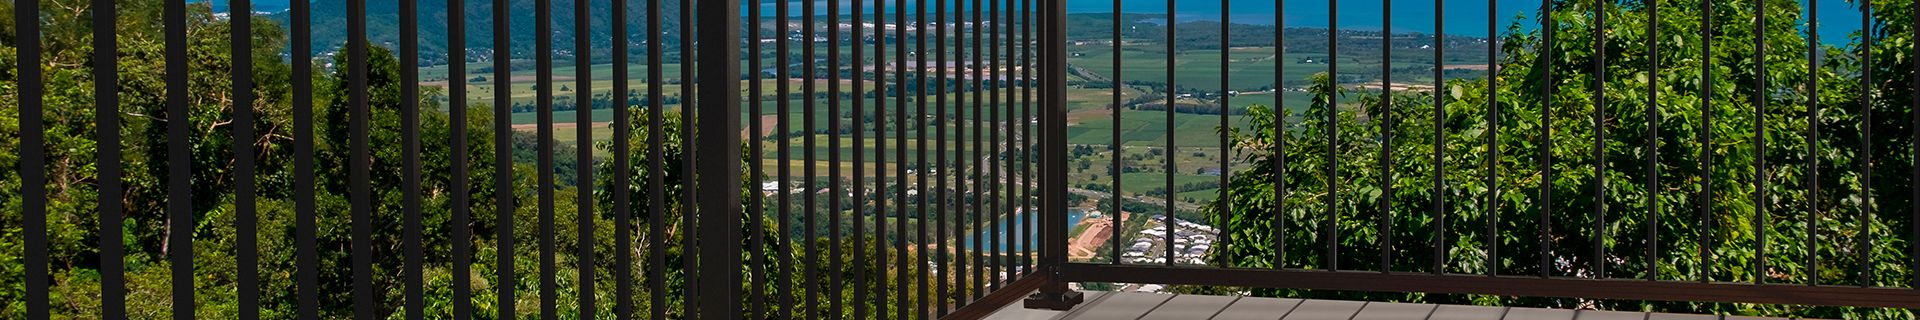 Balcony with view of town below and black balustrade fence.